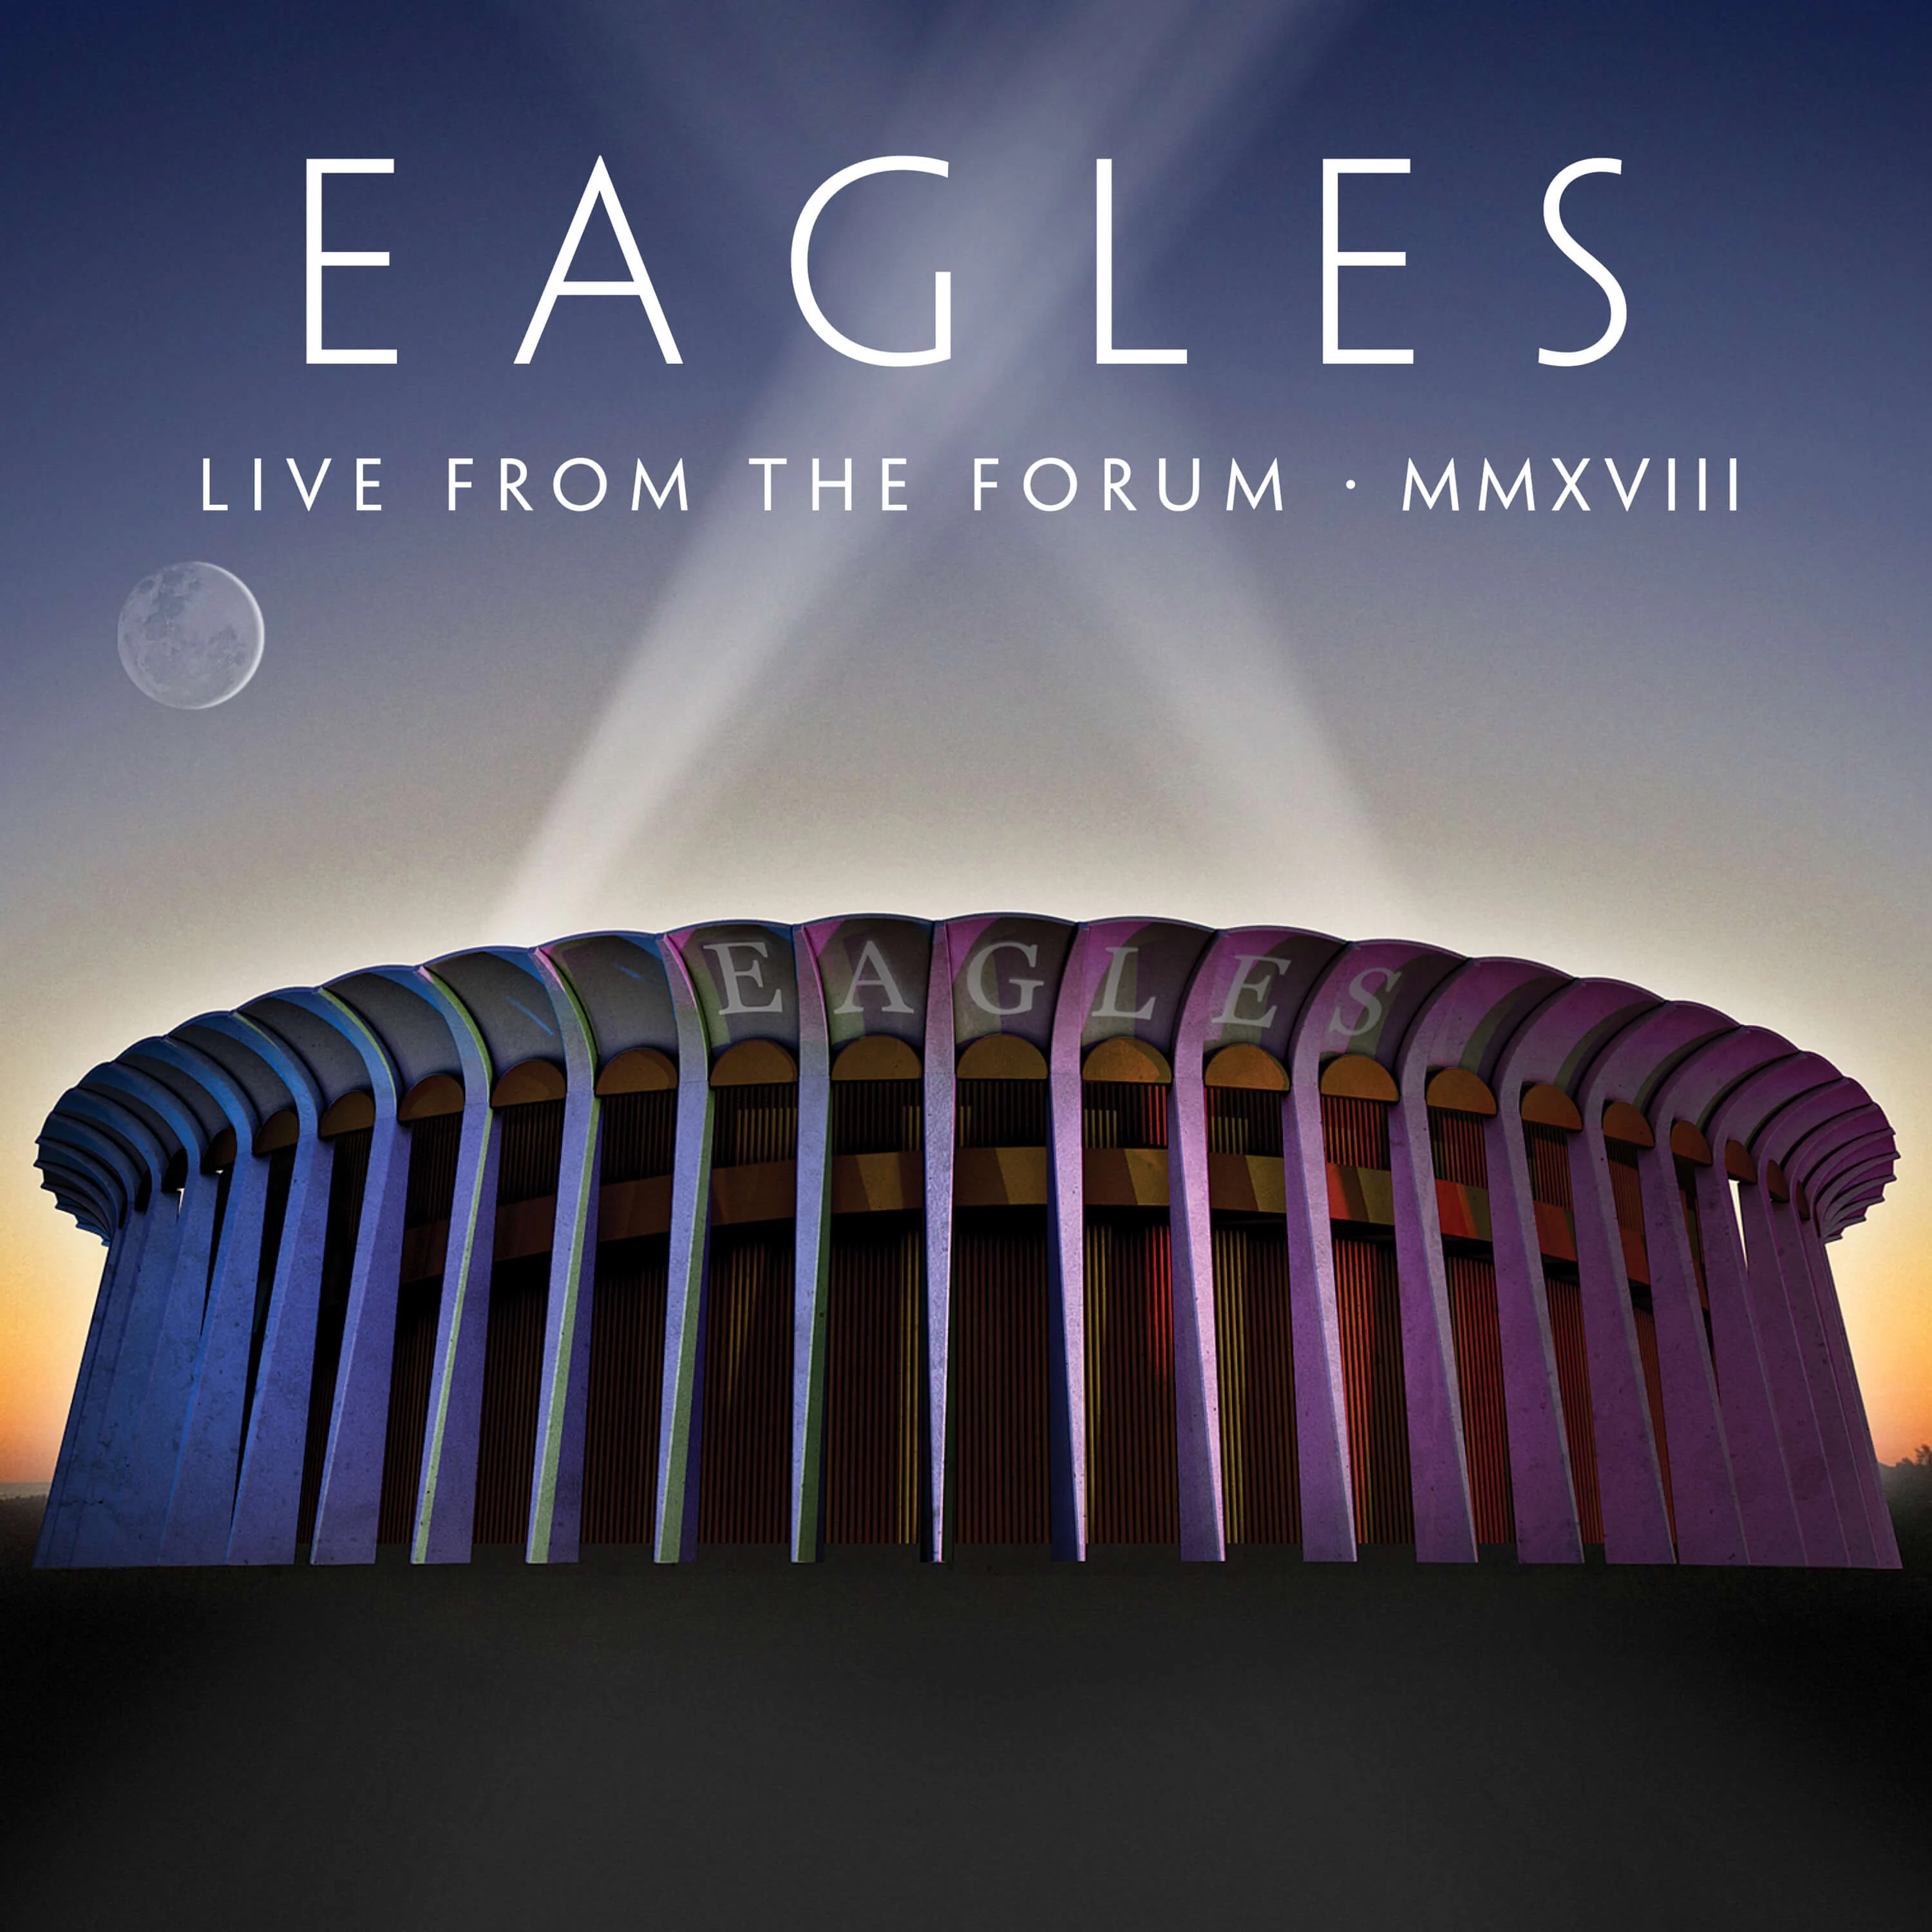 Live From The Forum MMXVIII was directed by Nick Wickham